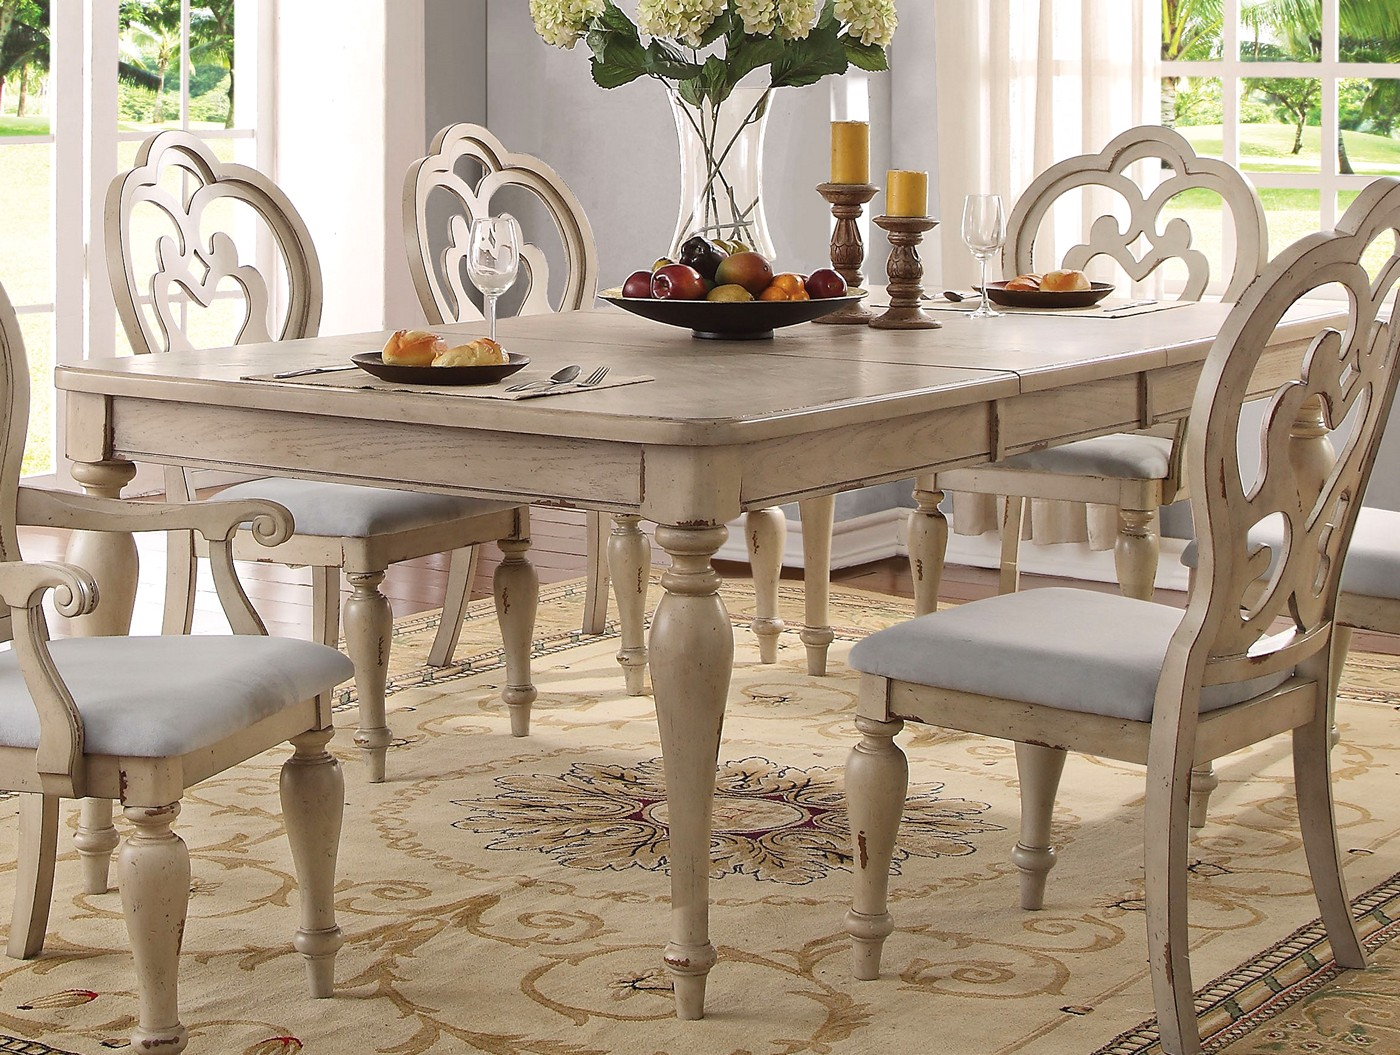 French Country Dining Table Set White Wood Dining Room Table